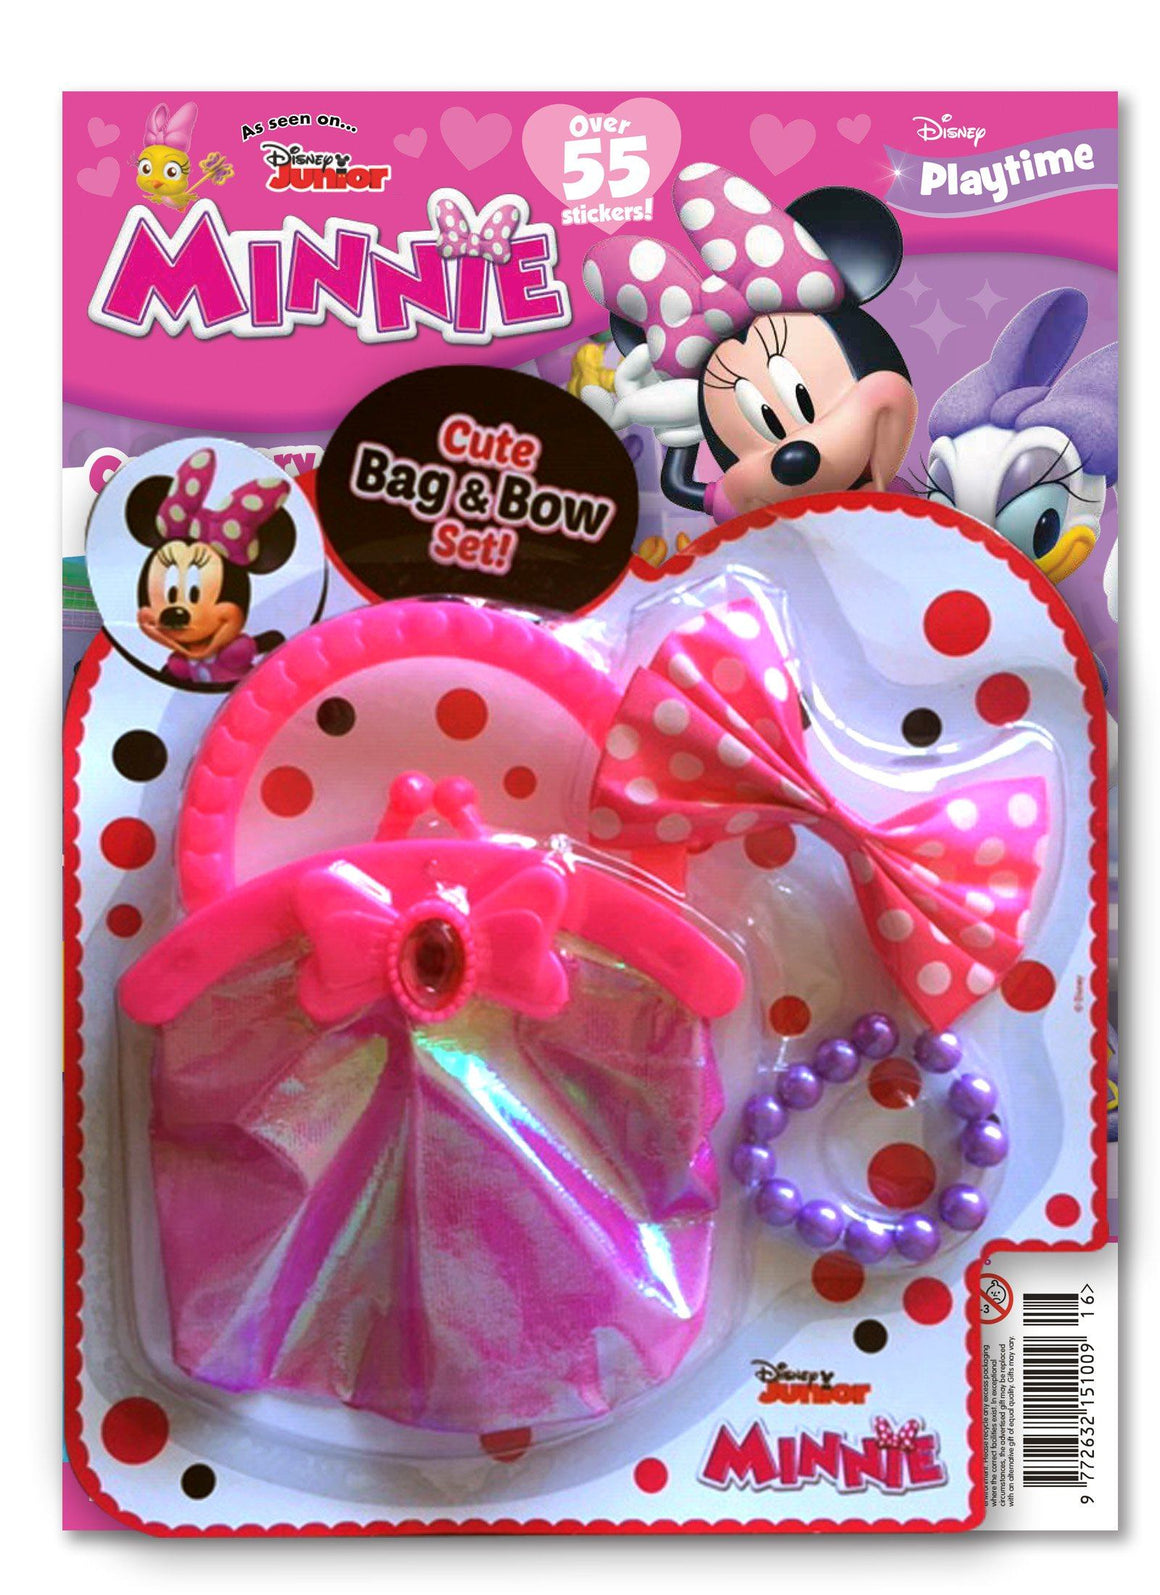 Disney Playtime Magazine - Issue 16 Gifted Magazine 5 Minute Fun Shop